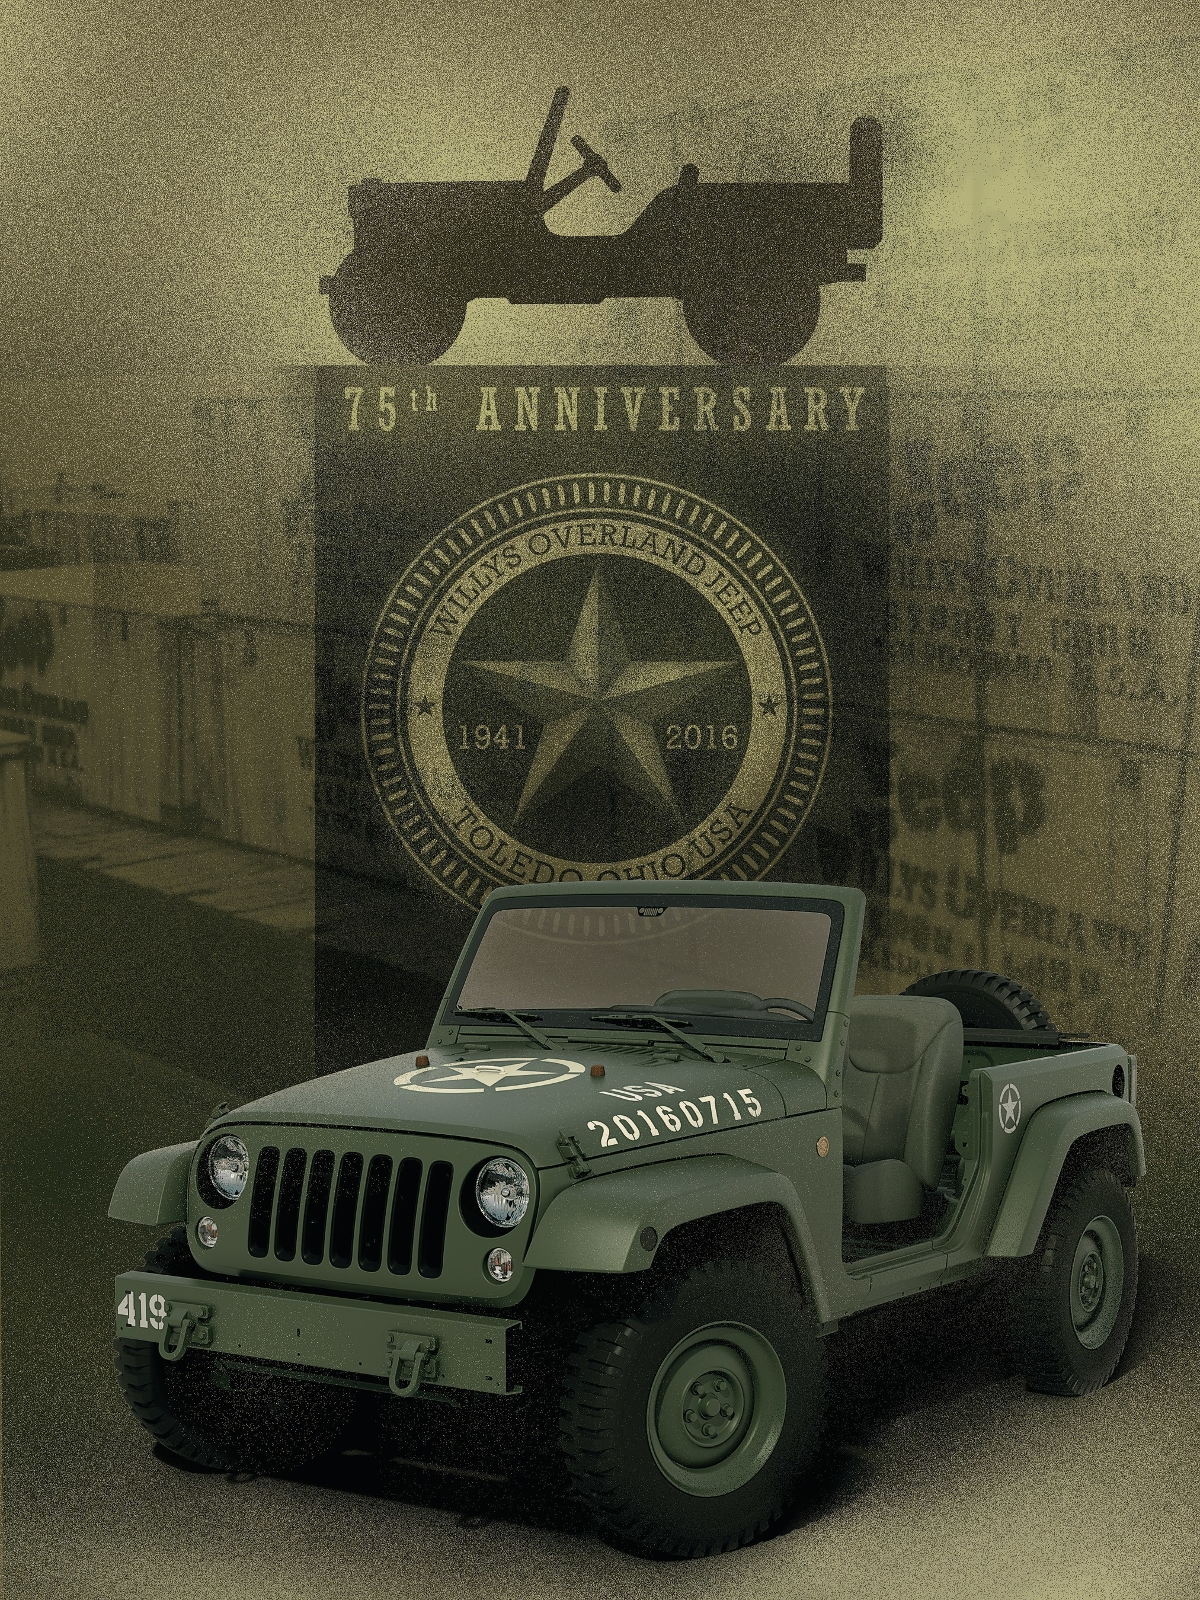 jeep celebrates 75 years with wwii willys overland tribute concept vehicle onallcylinders. Black Bedroom Furniture Sets. Home Design Ideas